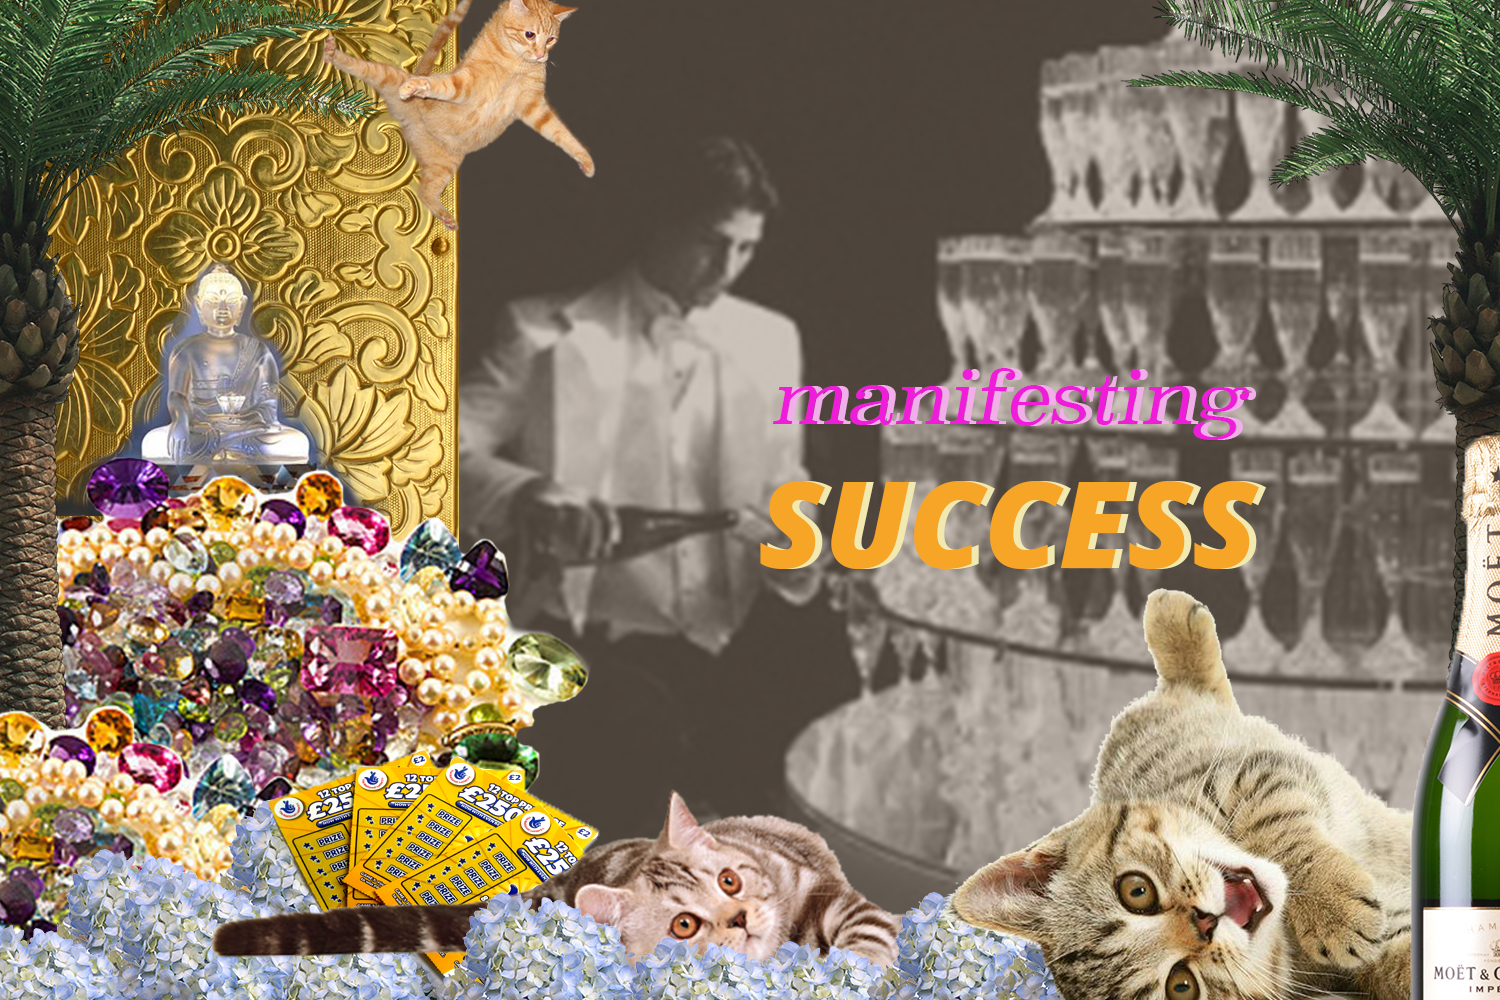 manifestation, manifesting success, success